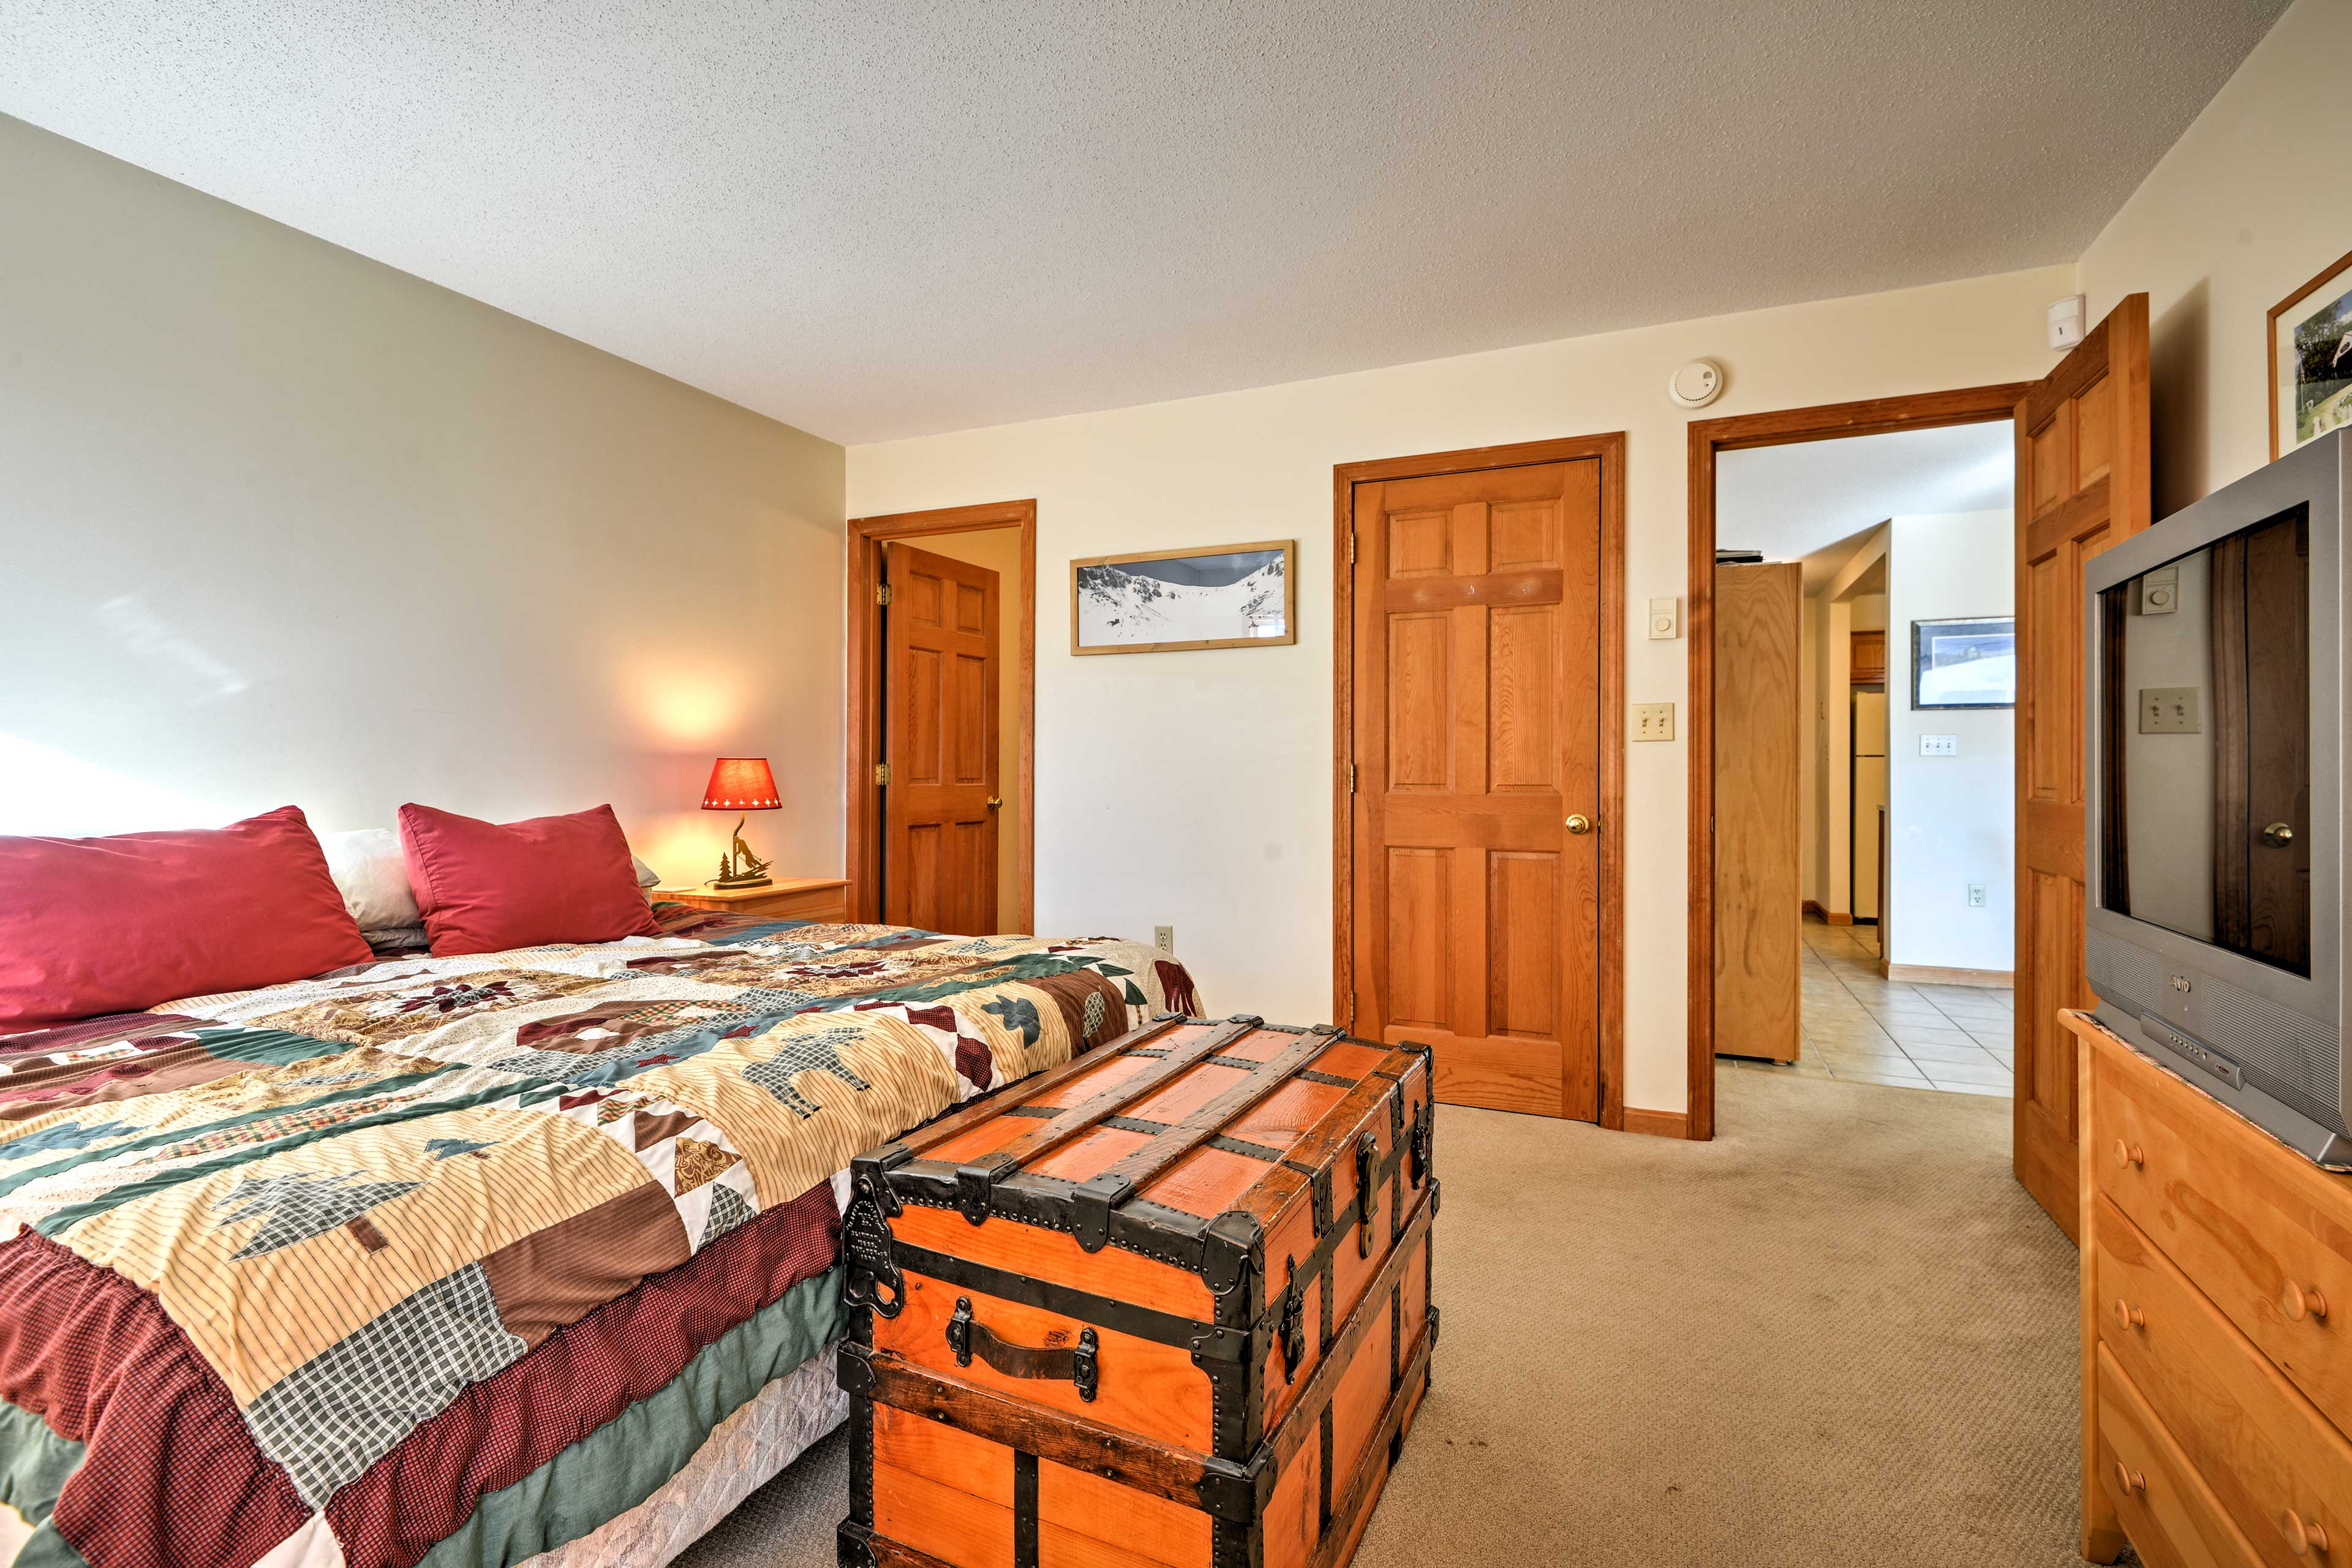 Settle in for the night in one of the 3 spacious bedrooms.